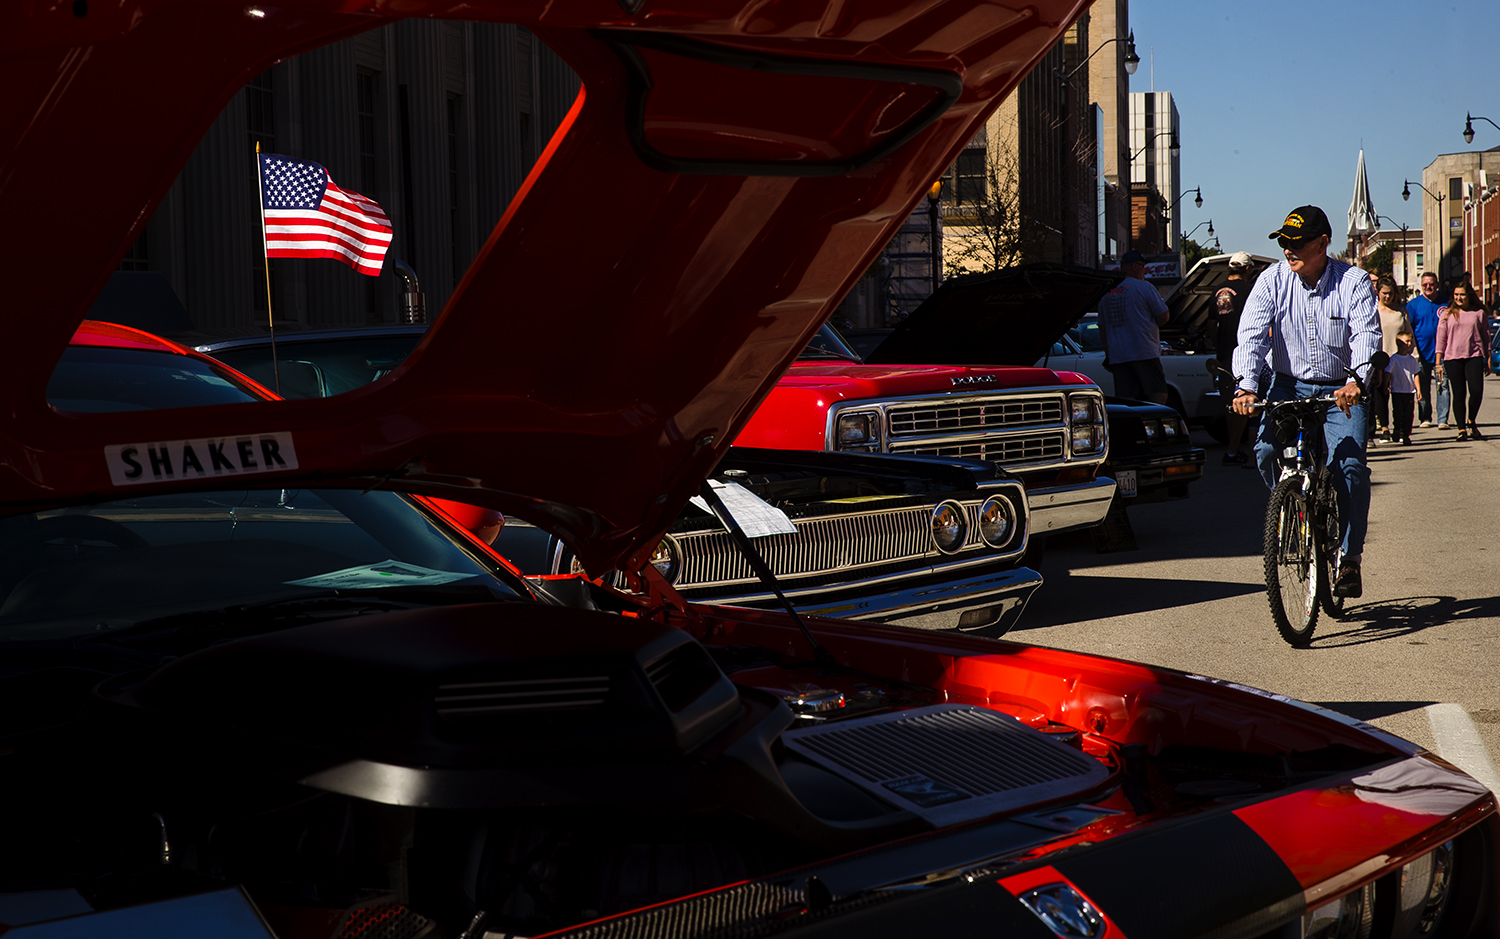 Guests view the vintage and modern vehicles on display during the 17th Annual International Route 66 Mother Road Festival Sunday, Sept. 23, 2018. [Ted Schurter/The State Journal-Register]